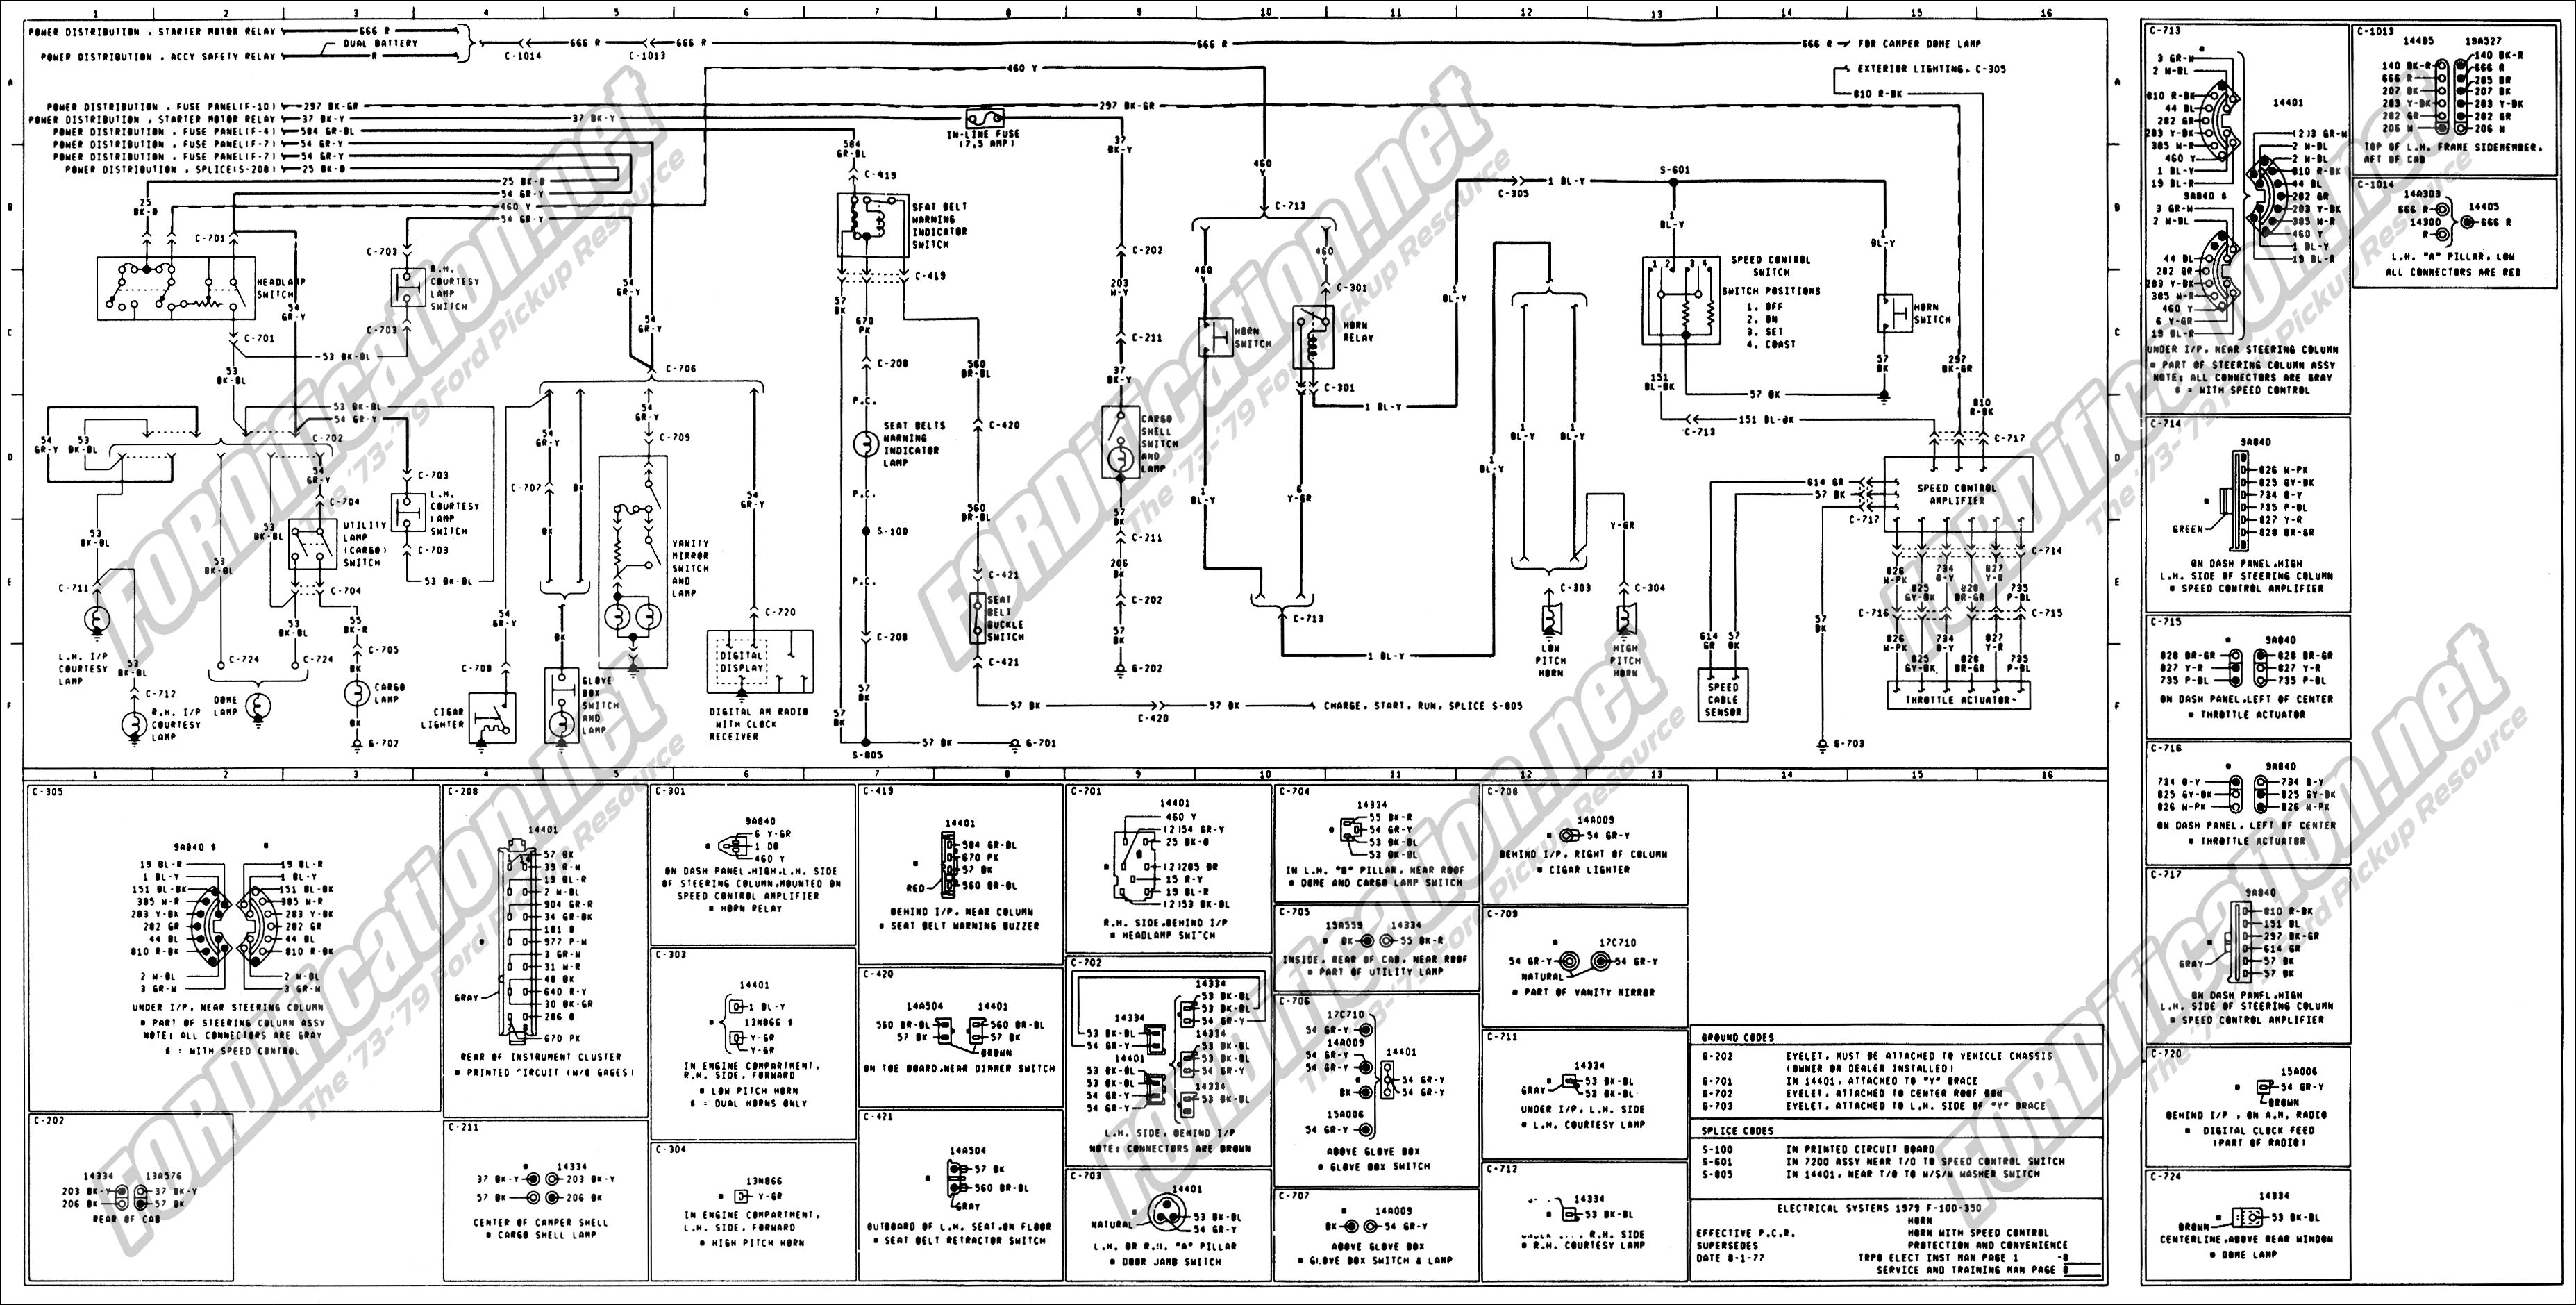 wiring_79master_8of9 1976 ford f150 wiring diagram 1979 ford truck wiring harness 1984 ford f150 wiring harness at bakdesigns.co